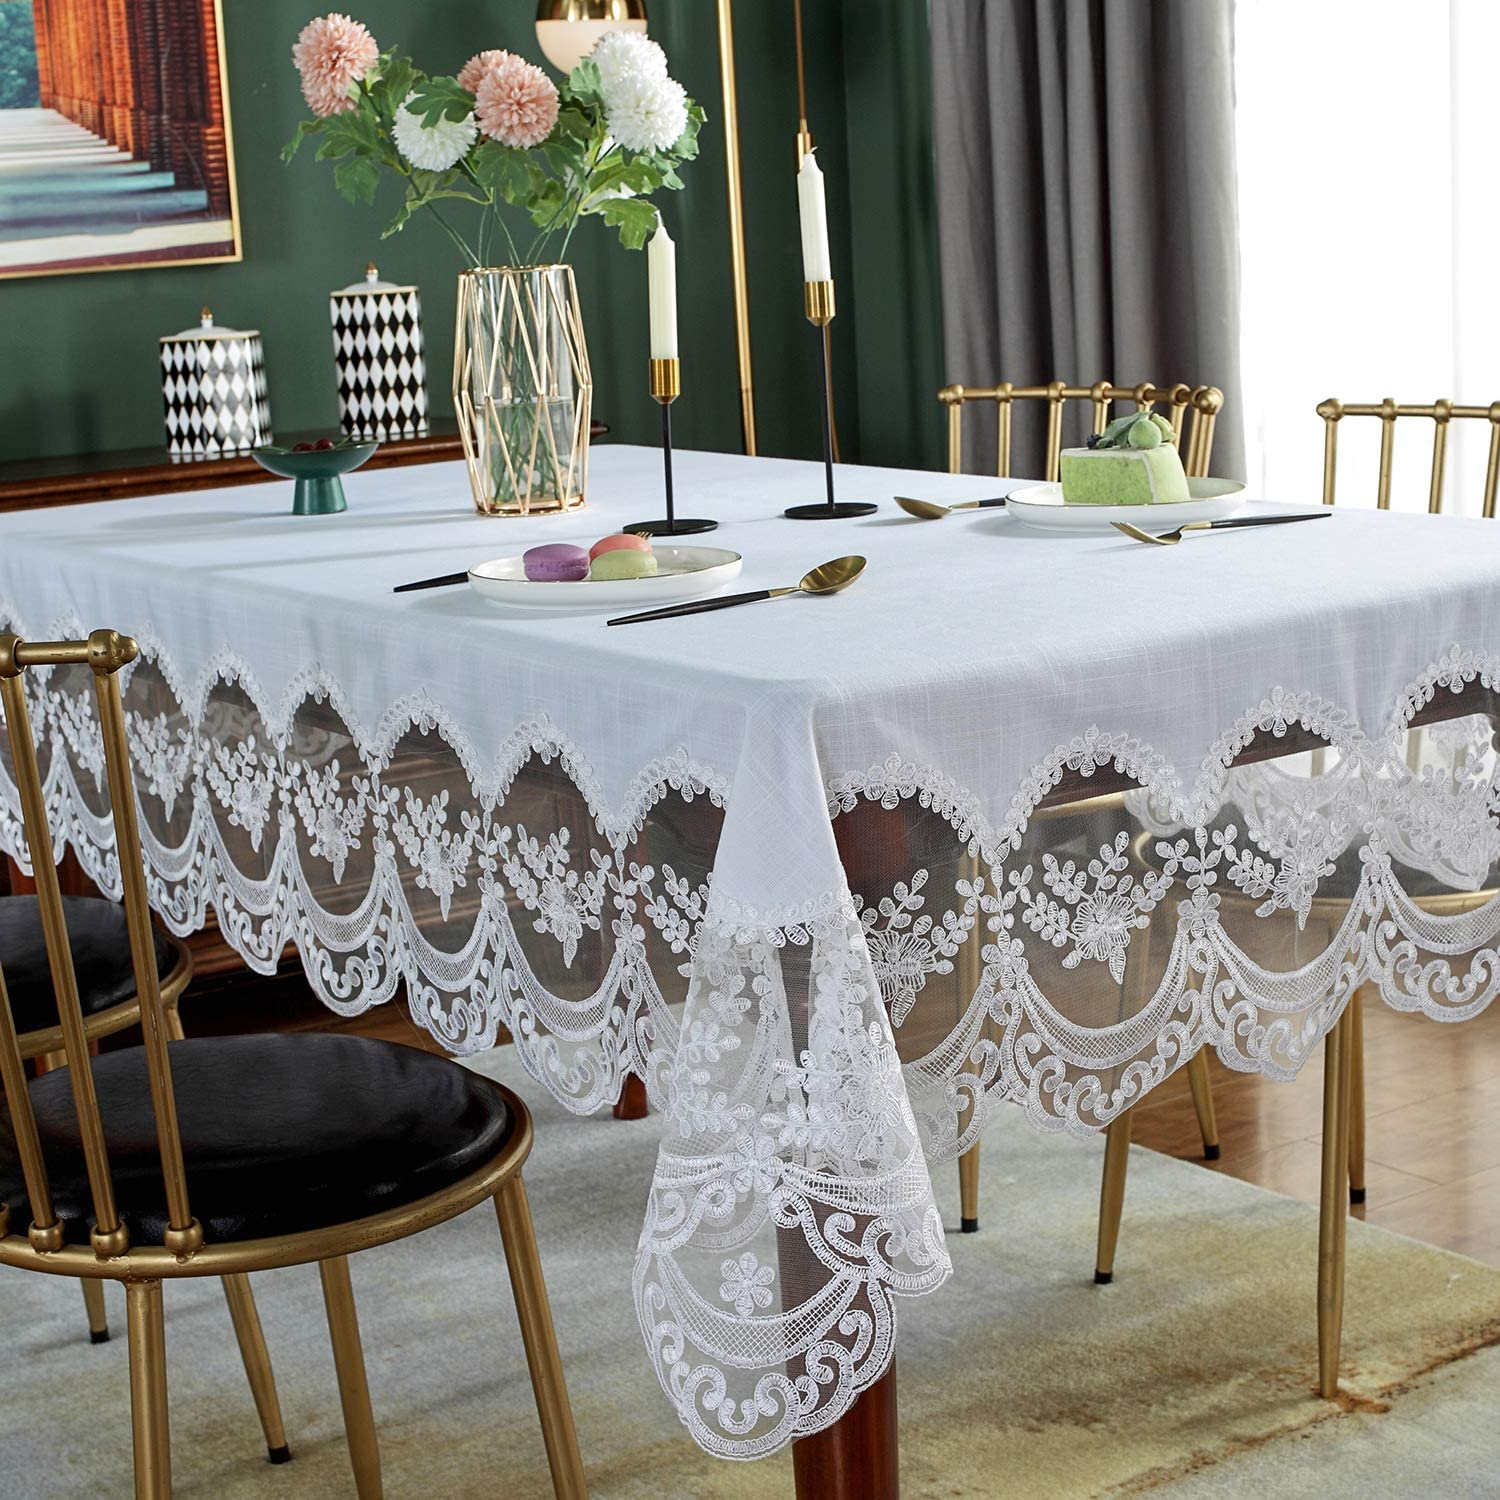 """SUTAVIA Lace Embroidered Table Cloth, Classic Rectangular Oblong Macrame Table Cover, for Kitchen Dining Picnic Table,Outdoor and Indoor Use (White, 60""""×120""""): Kitchen & Dining"""